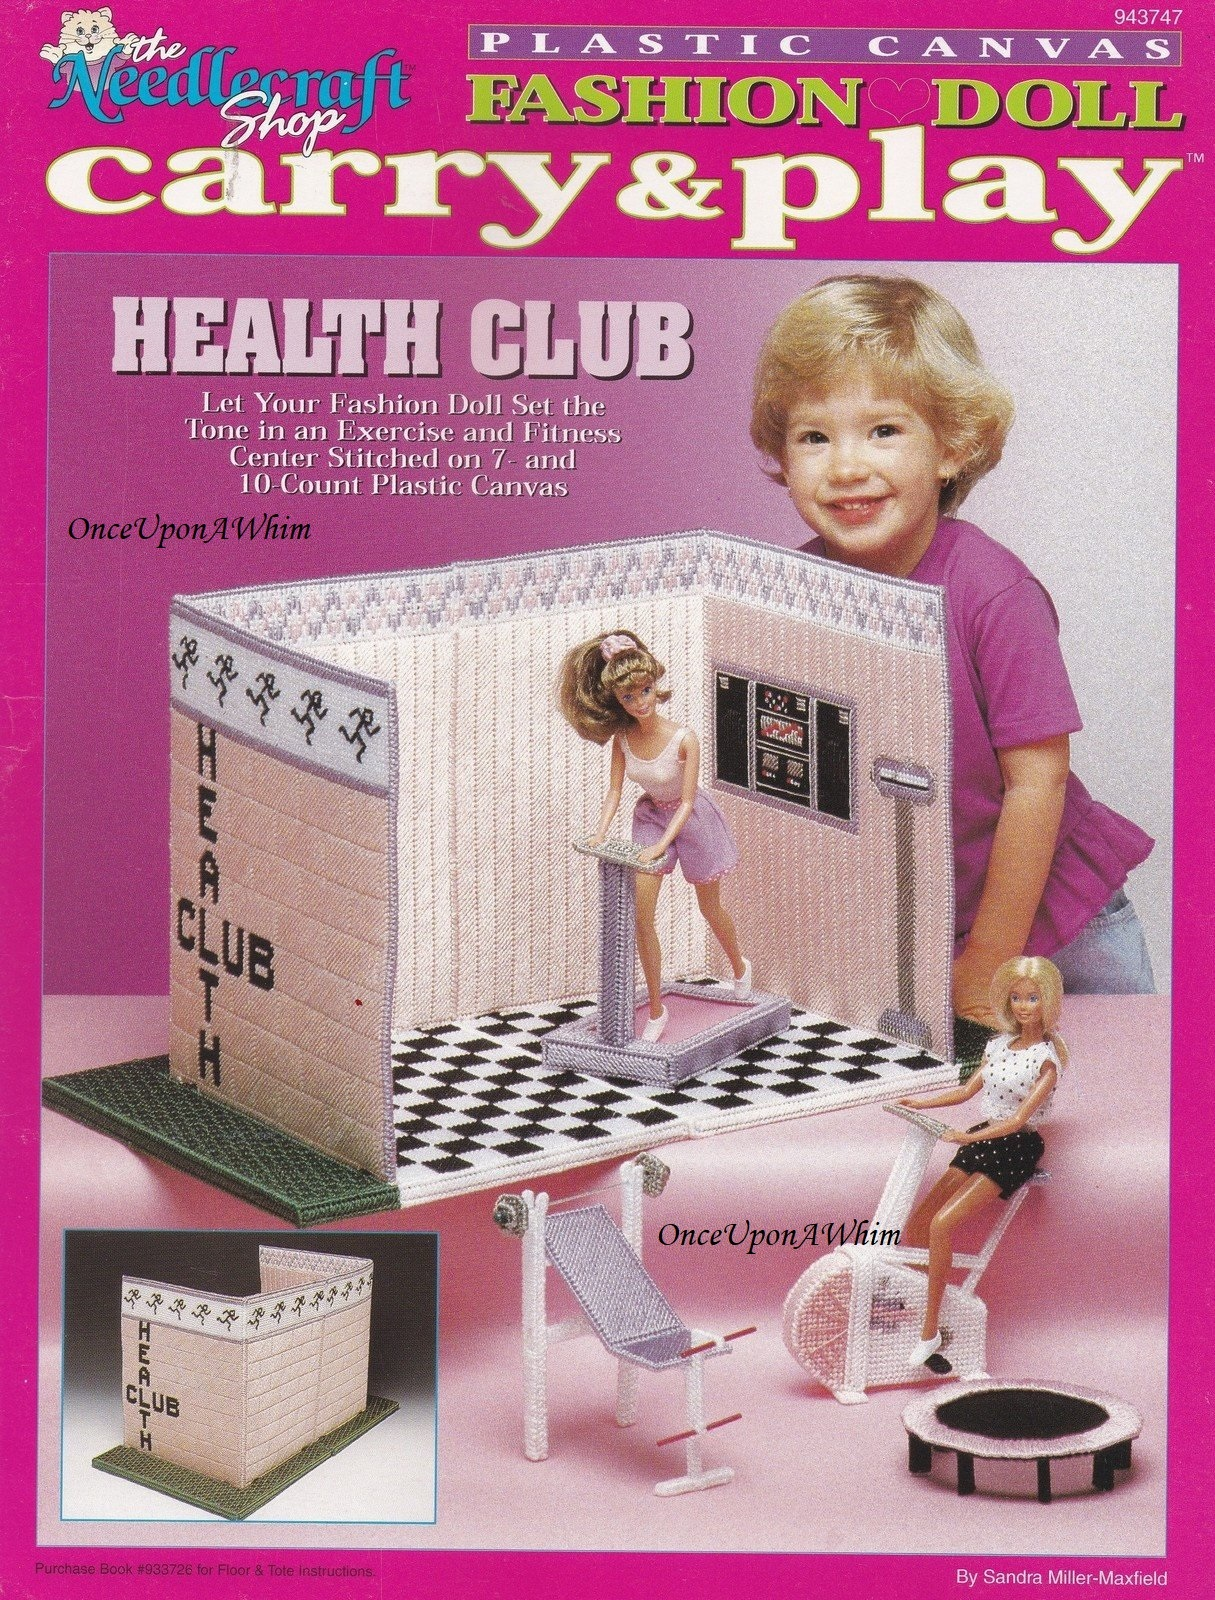 Primary image for Fashion Doll Carry & Play Health Club, Plastic Canvas Pattern Booklet TNS 943747